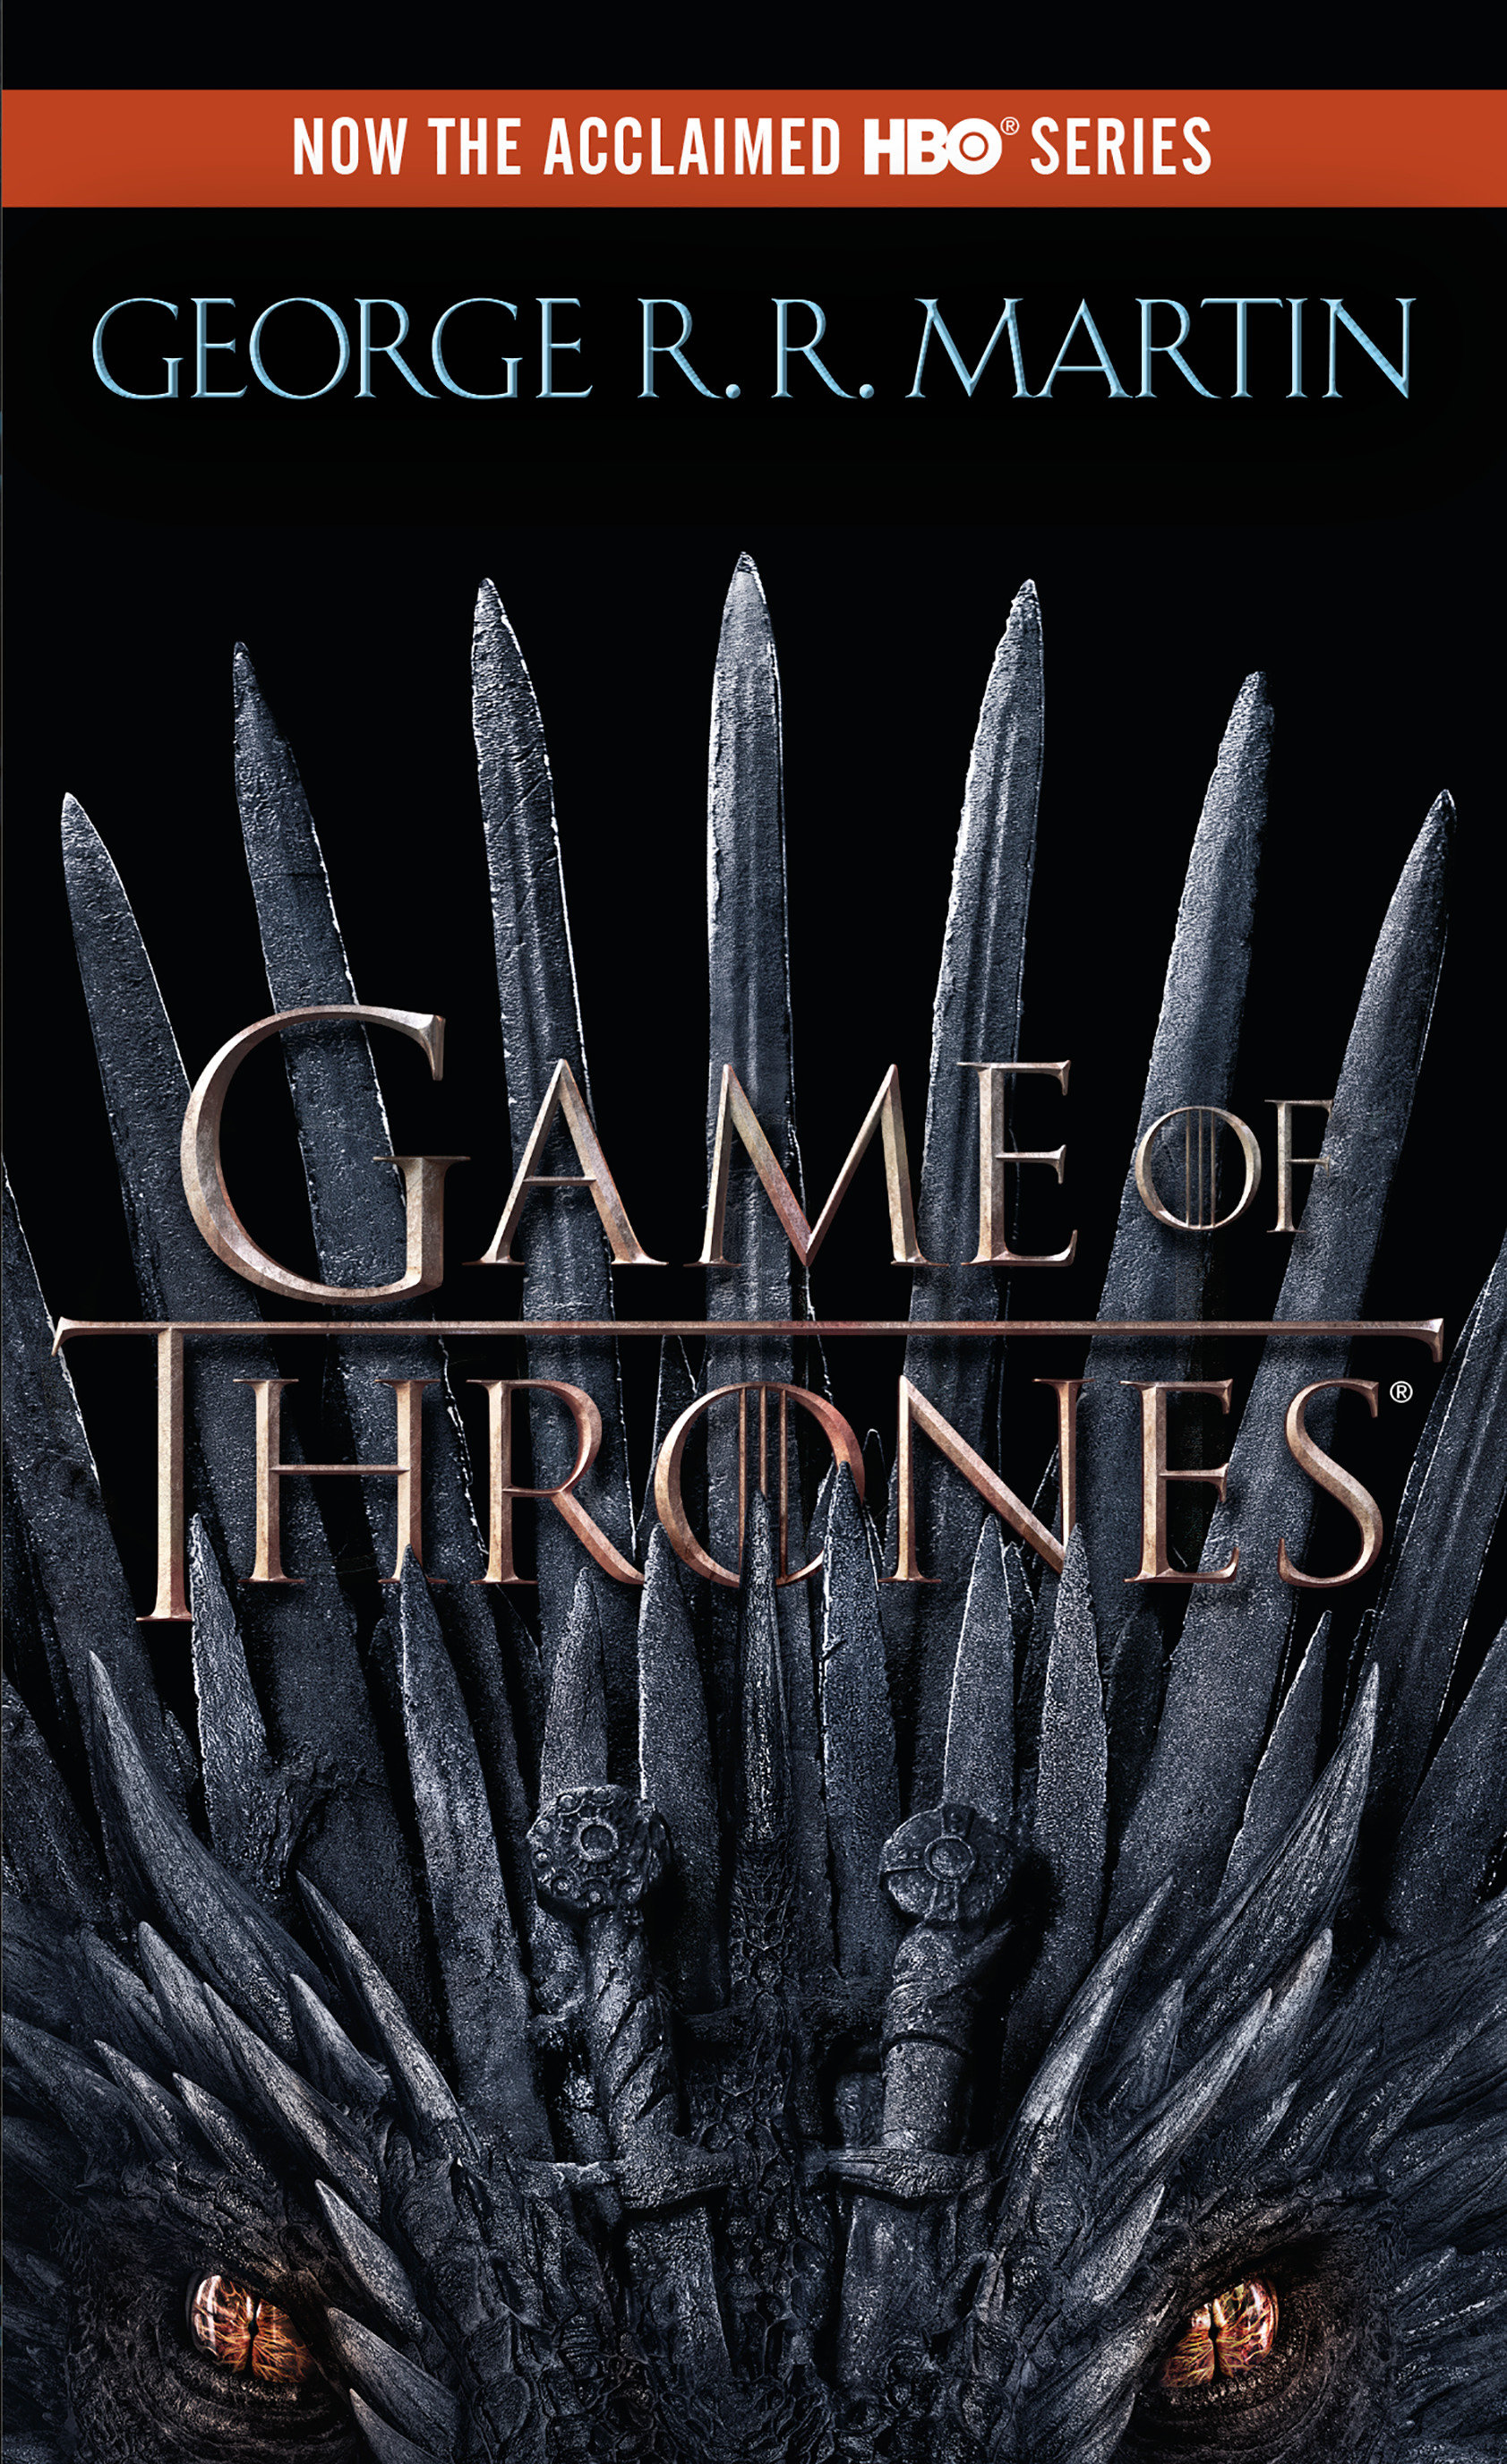 A game of thrones a song of ice and fire: book one cover image